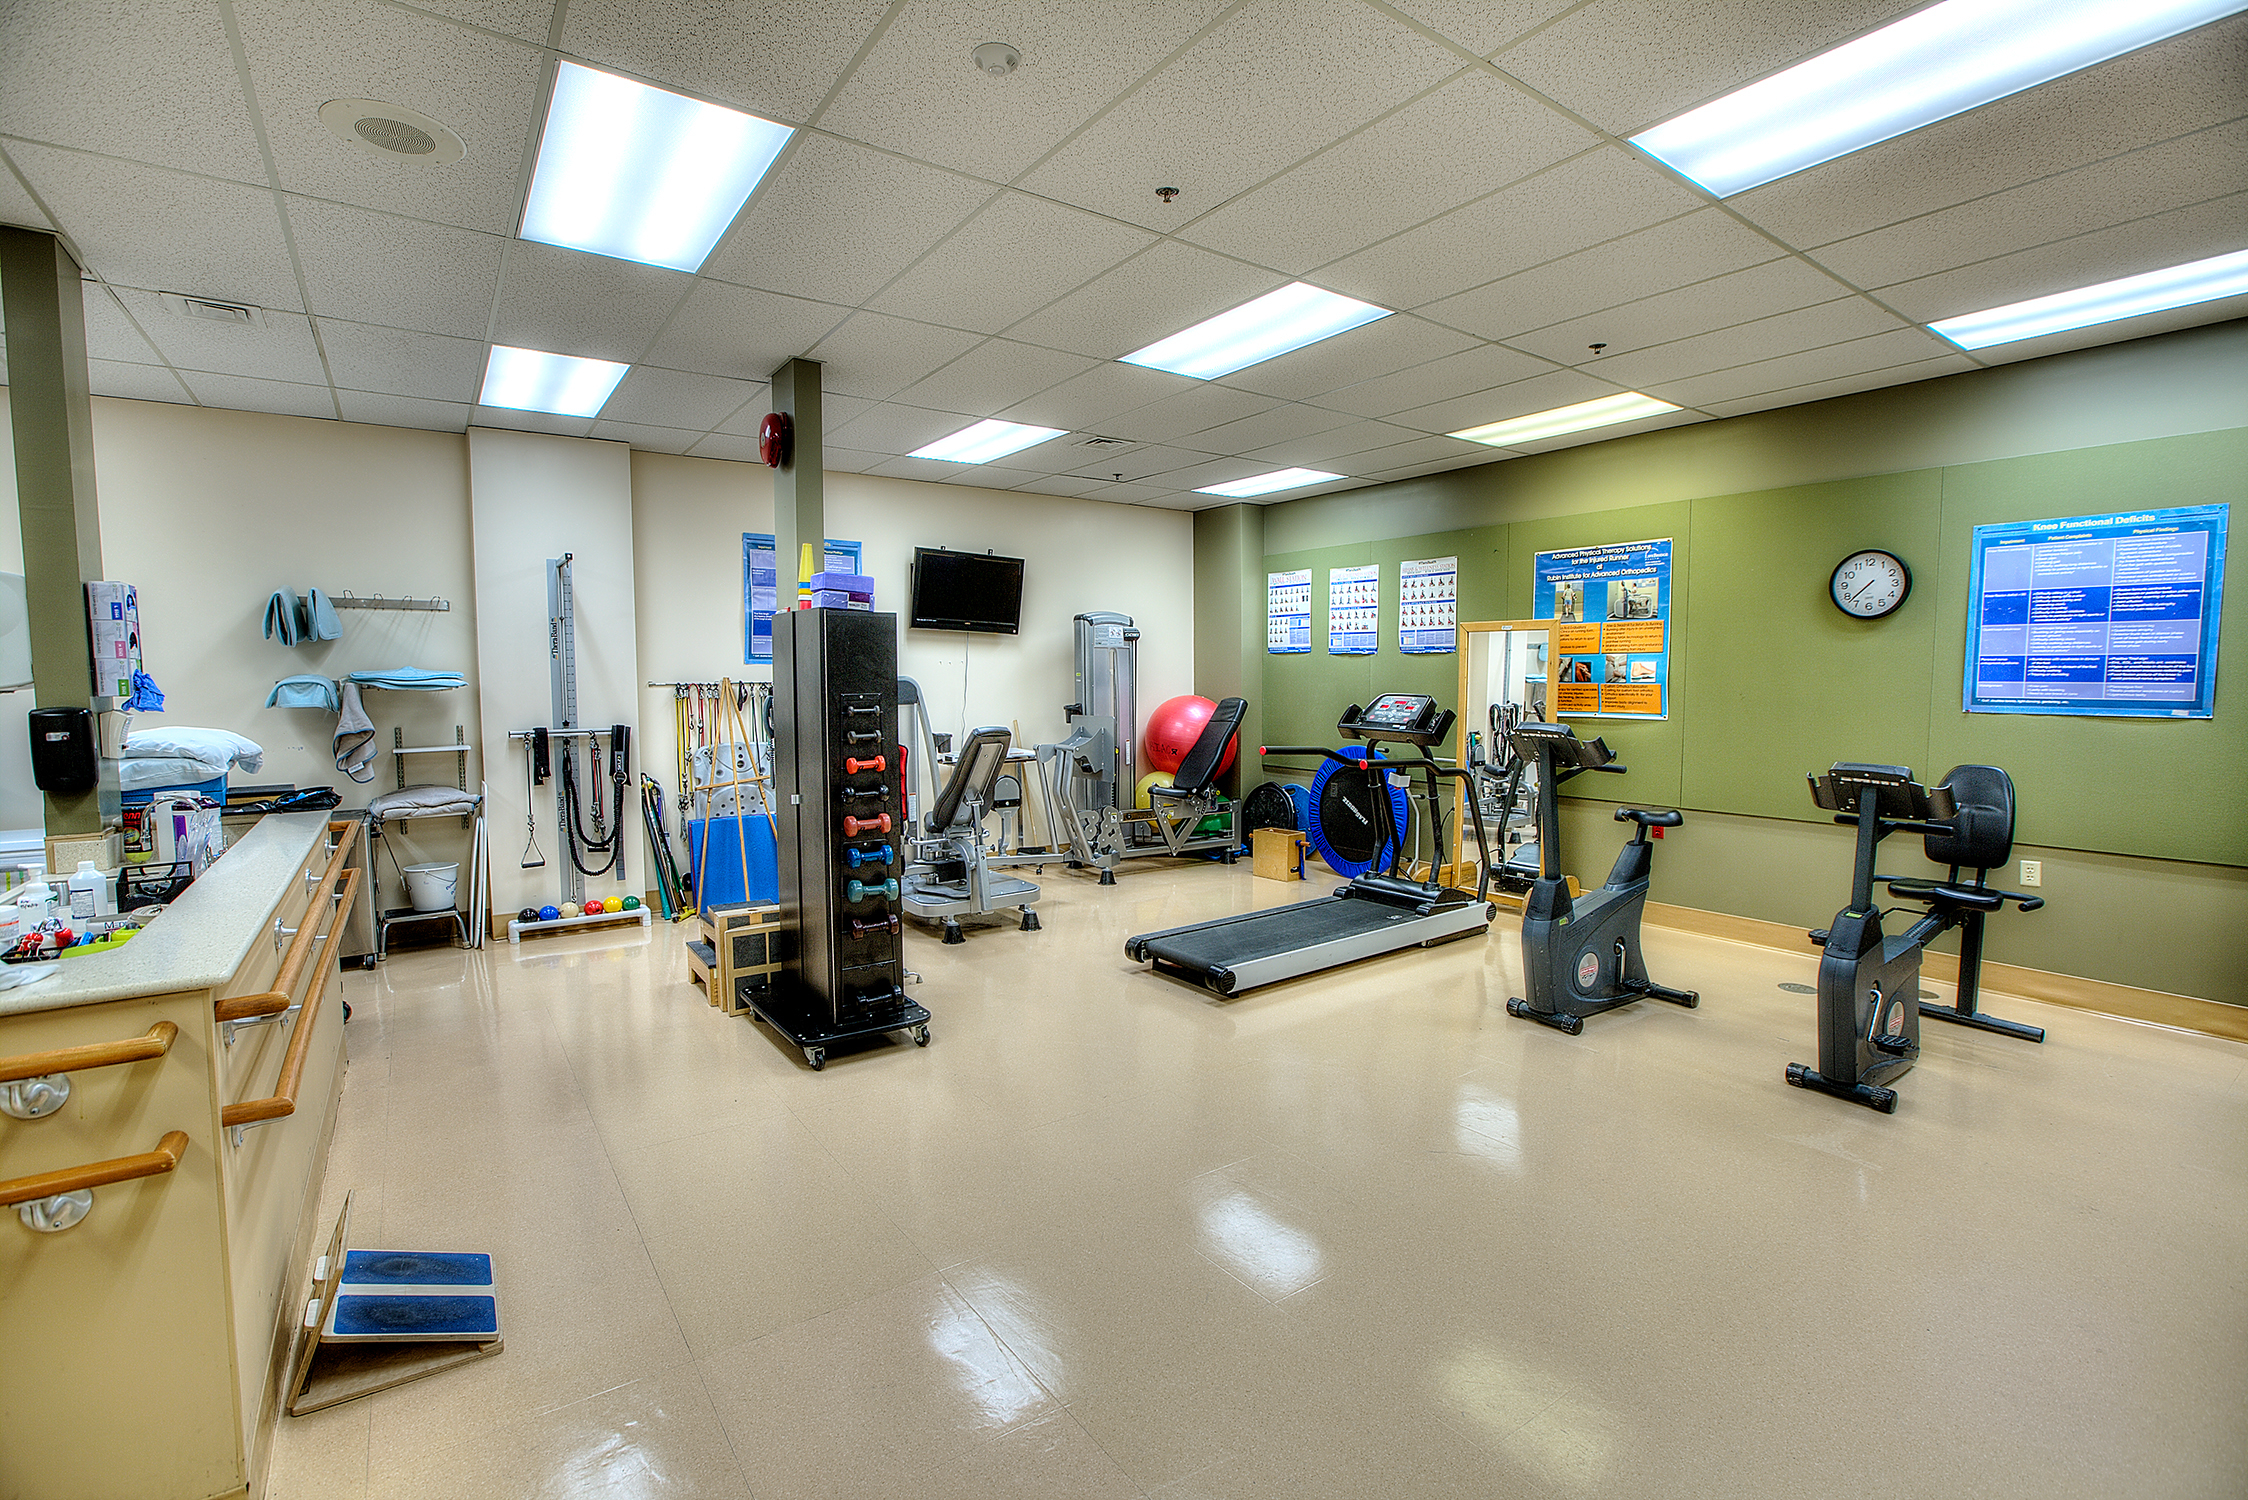 Gym containing physical therapy equipment like treadmills, bikes, and stretch bands